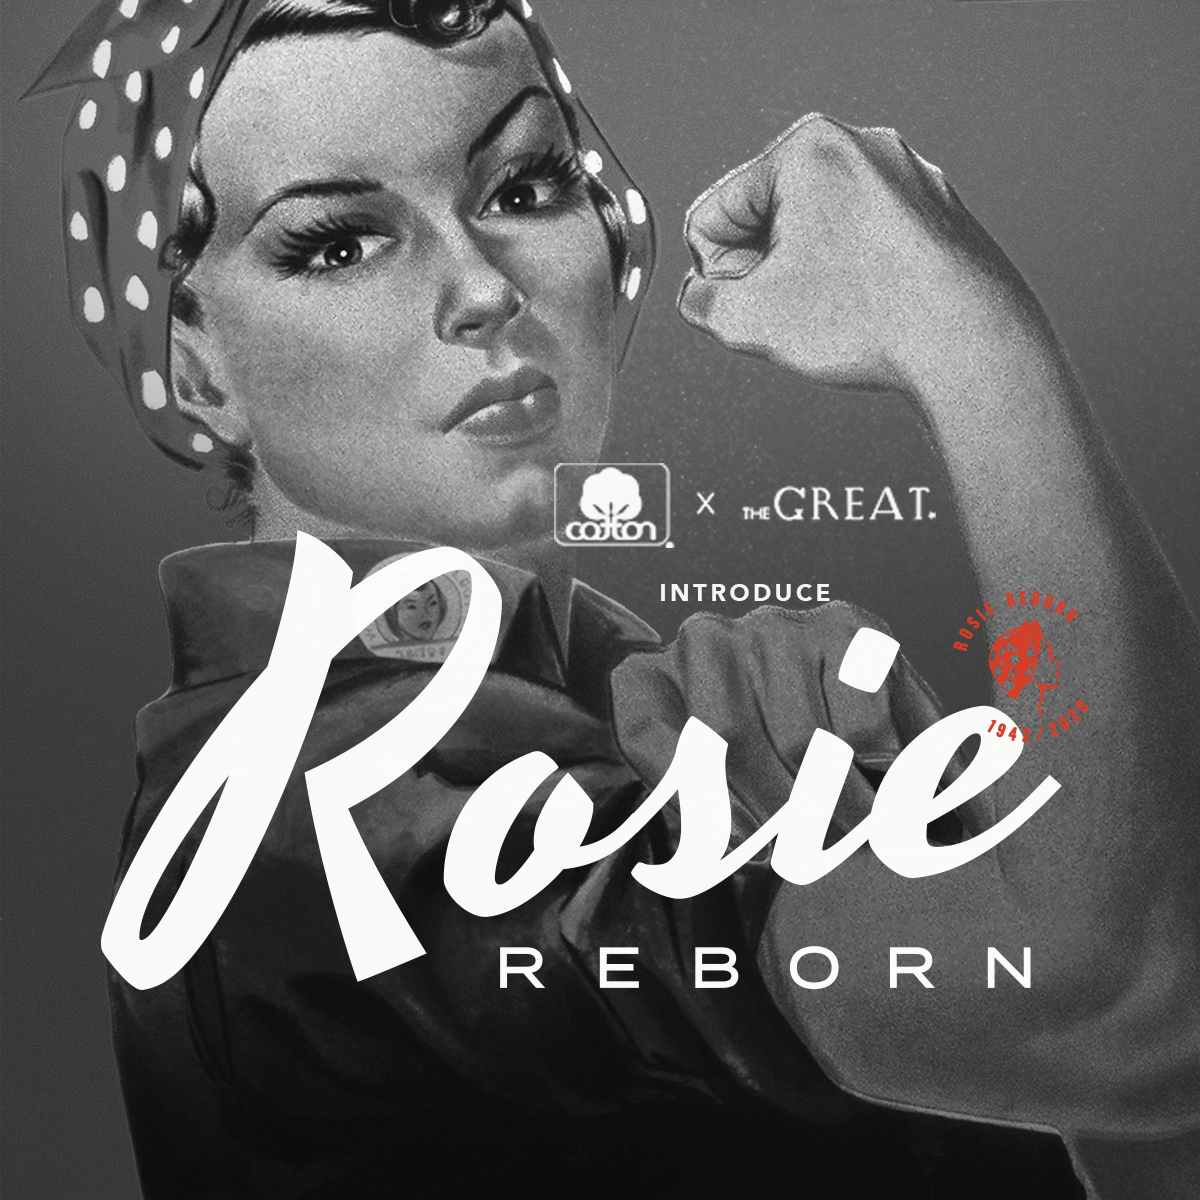 rosie the riveter reborn